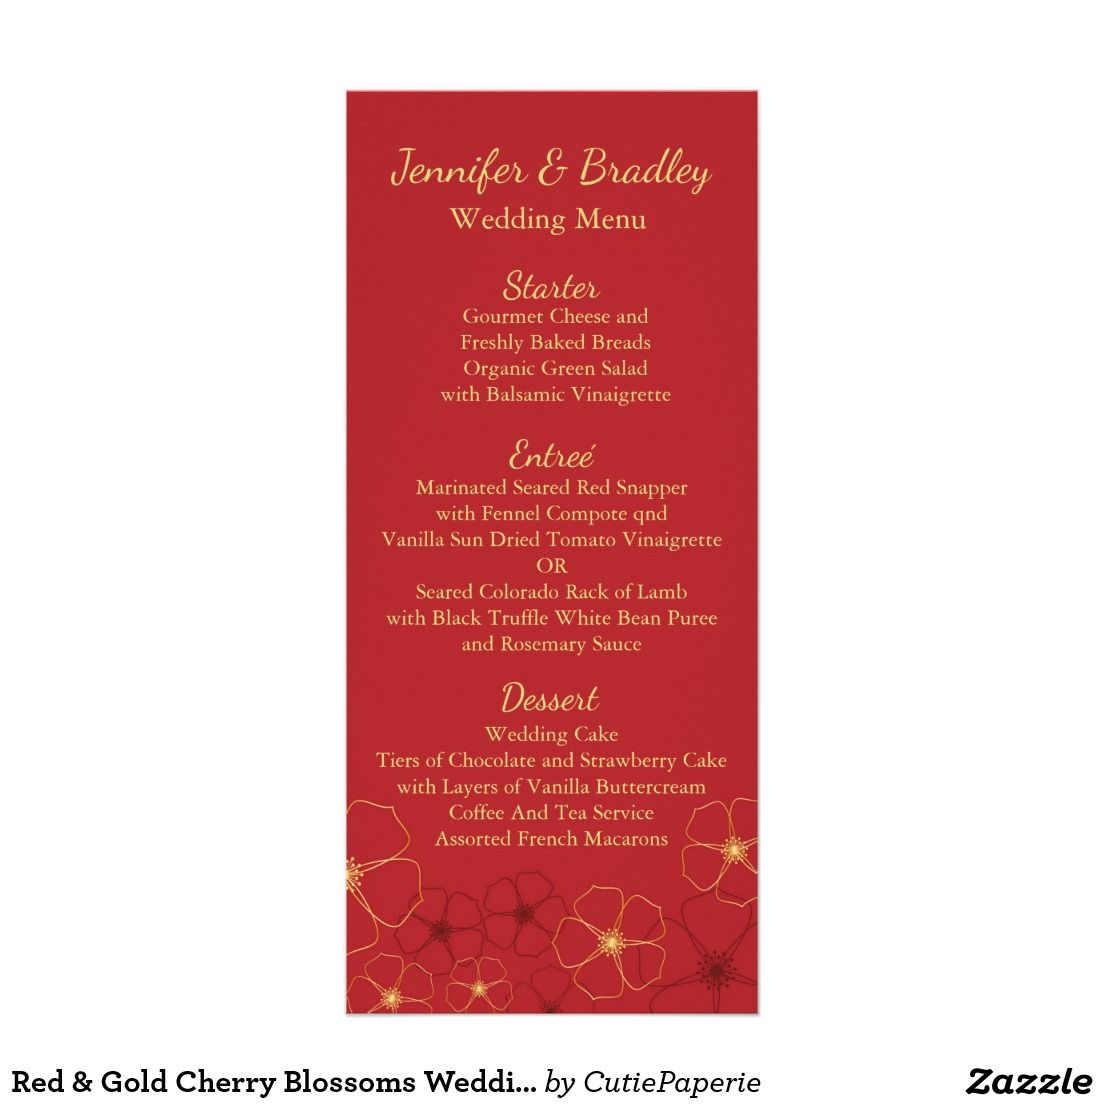 Red & Gold Cherry Blossoms Wedding Reception Menu | Red gold, Cherry ...